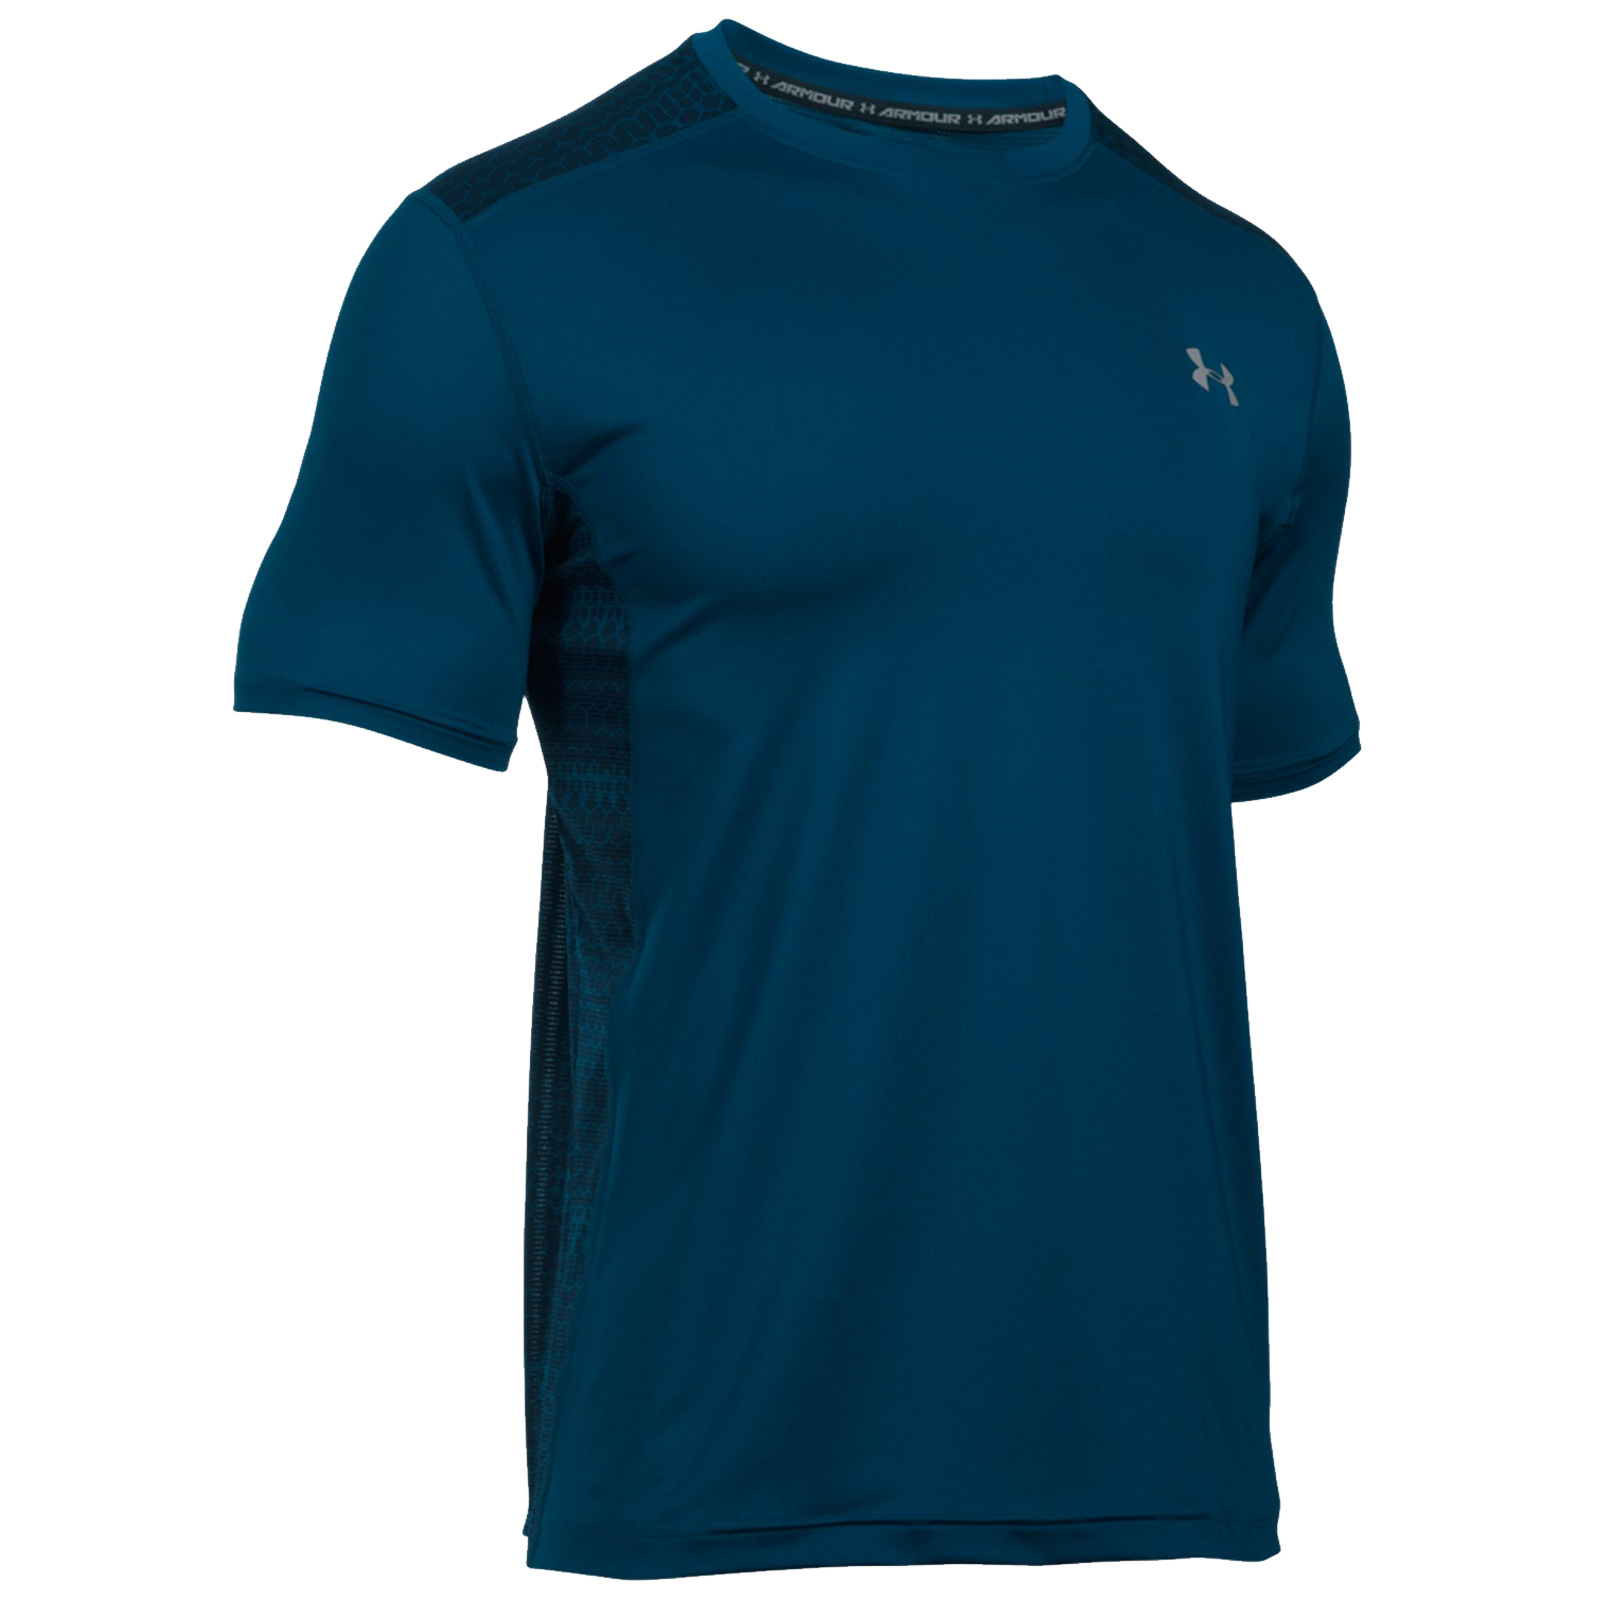 364a5315 2019 Under Armour Mens Raid Short Sleeve T-Shirt - New Training ...